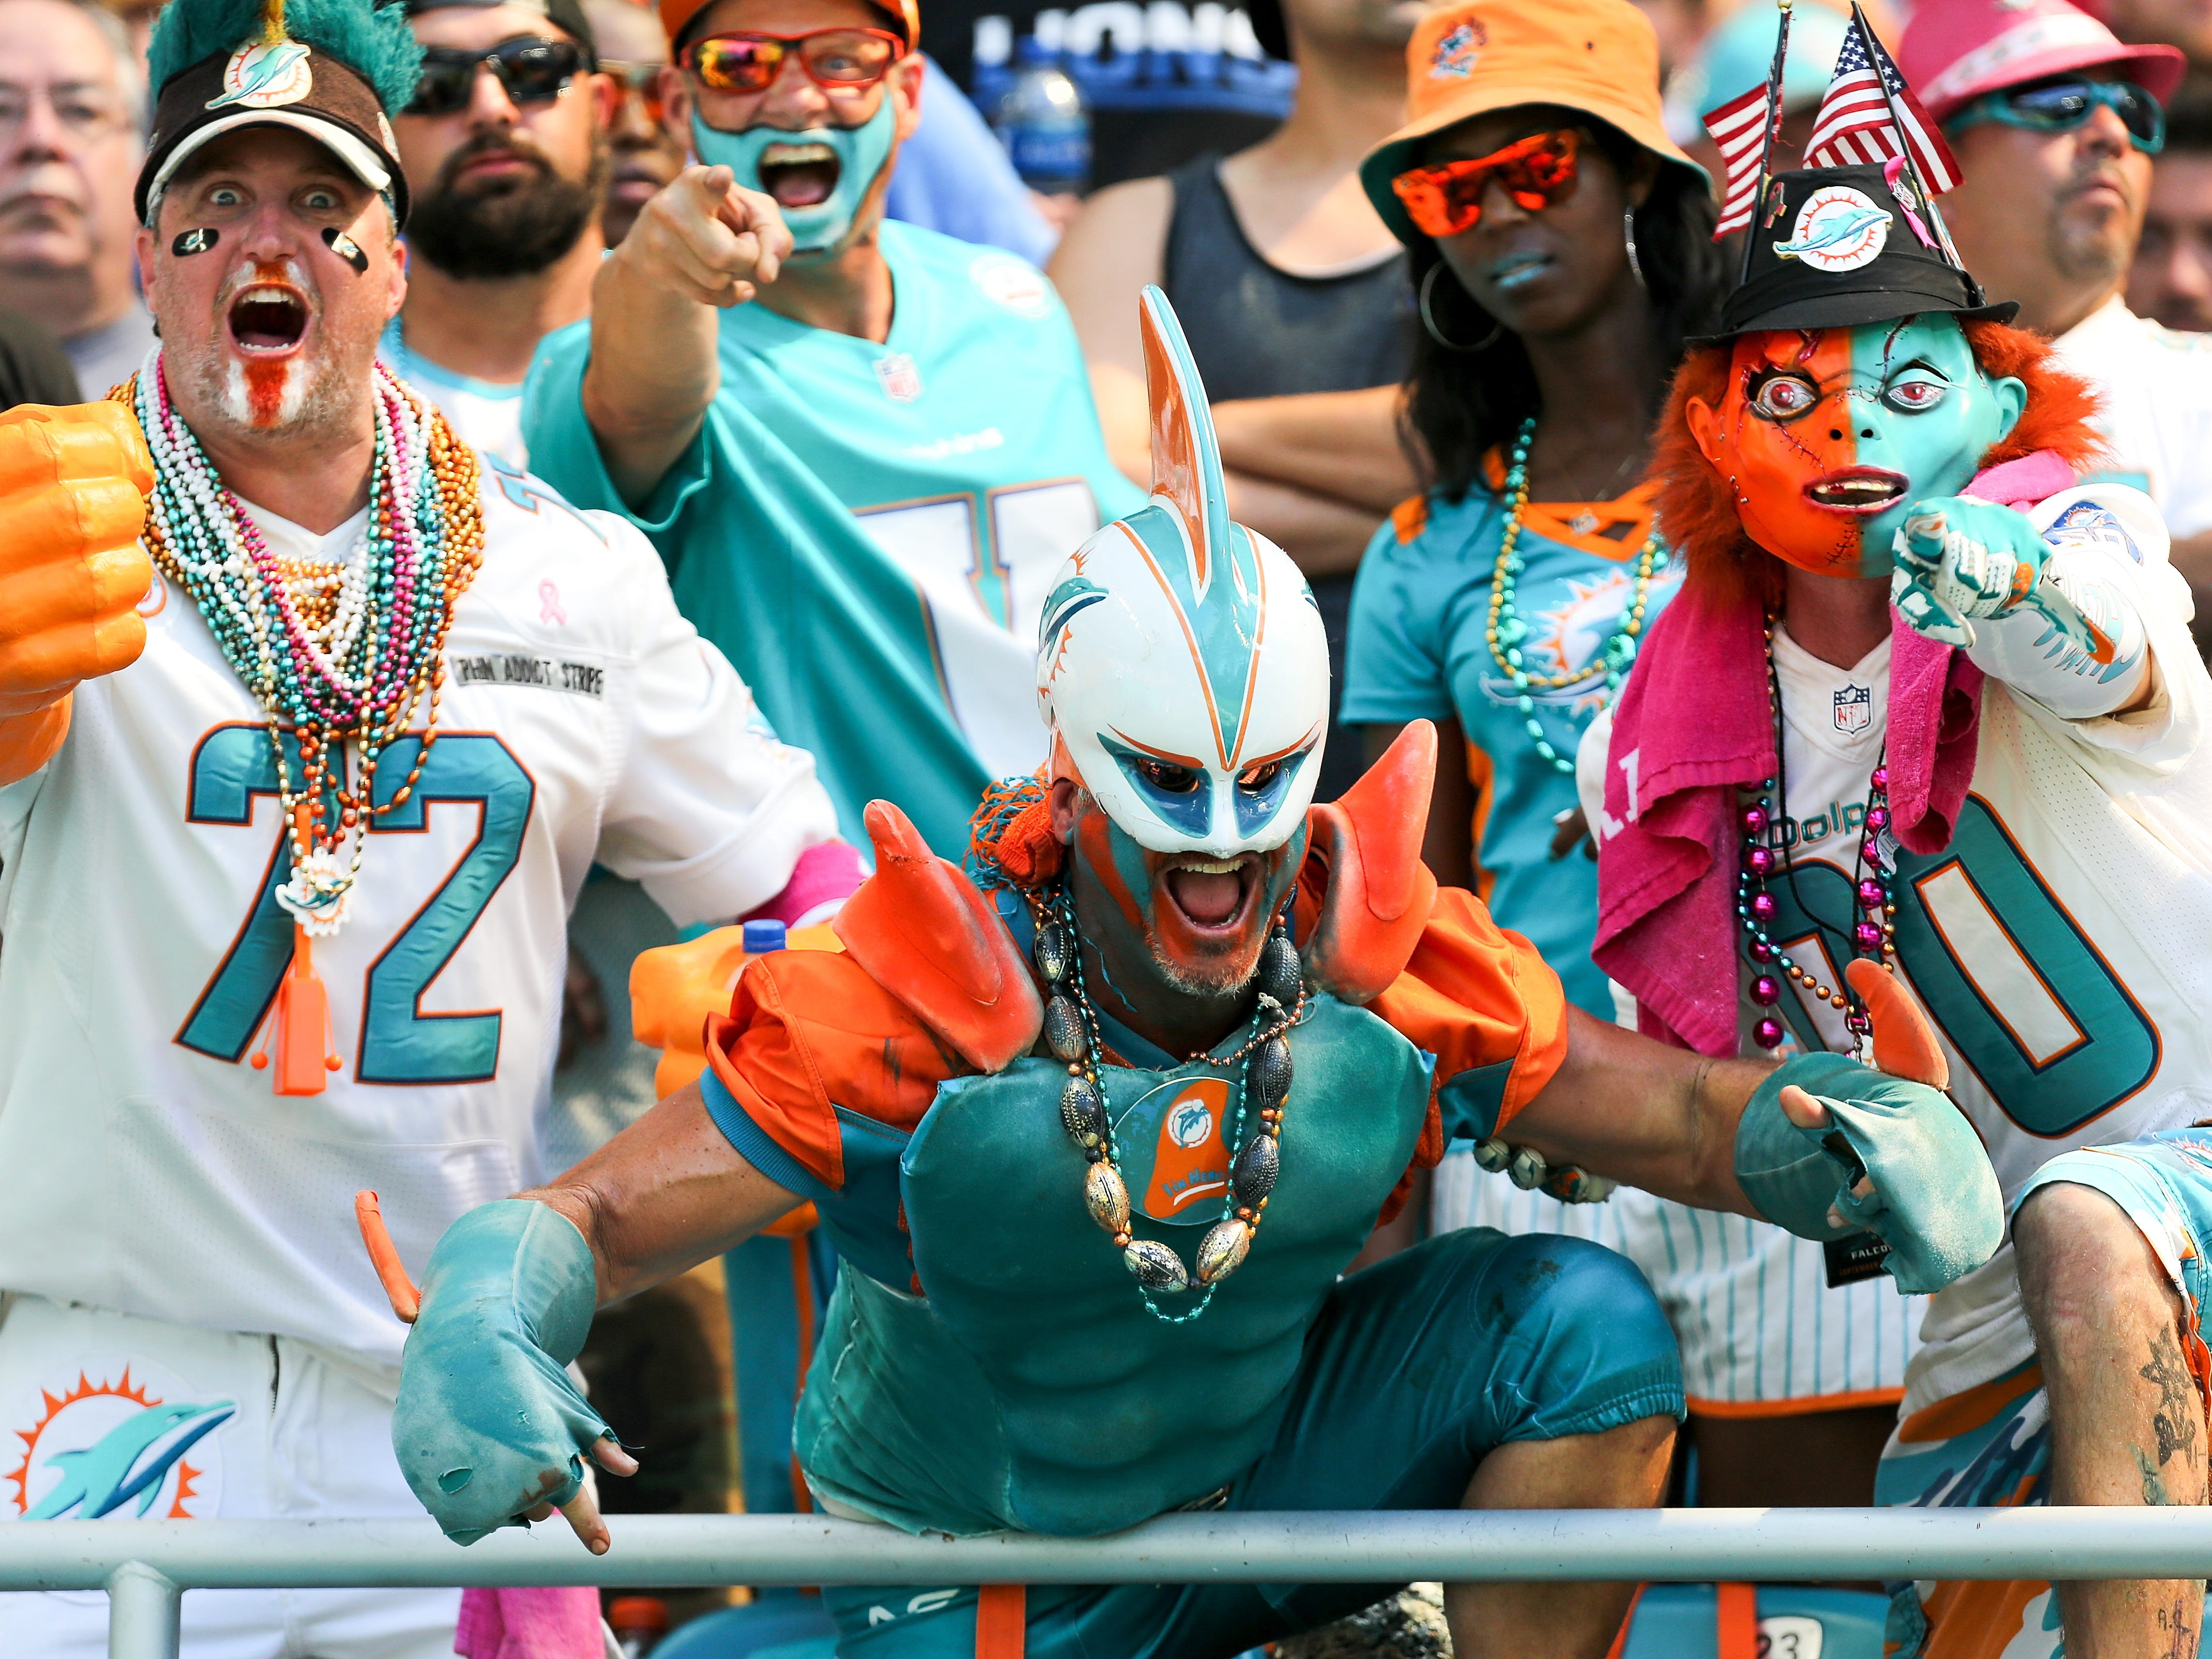 Miami Dolphins fans react during the first half of a game against the Detroit Lions at Hard Rock Stadium in Miami, Florida, on October 21, 2018.